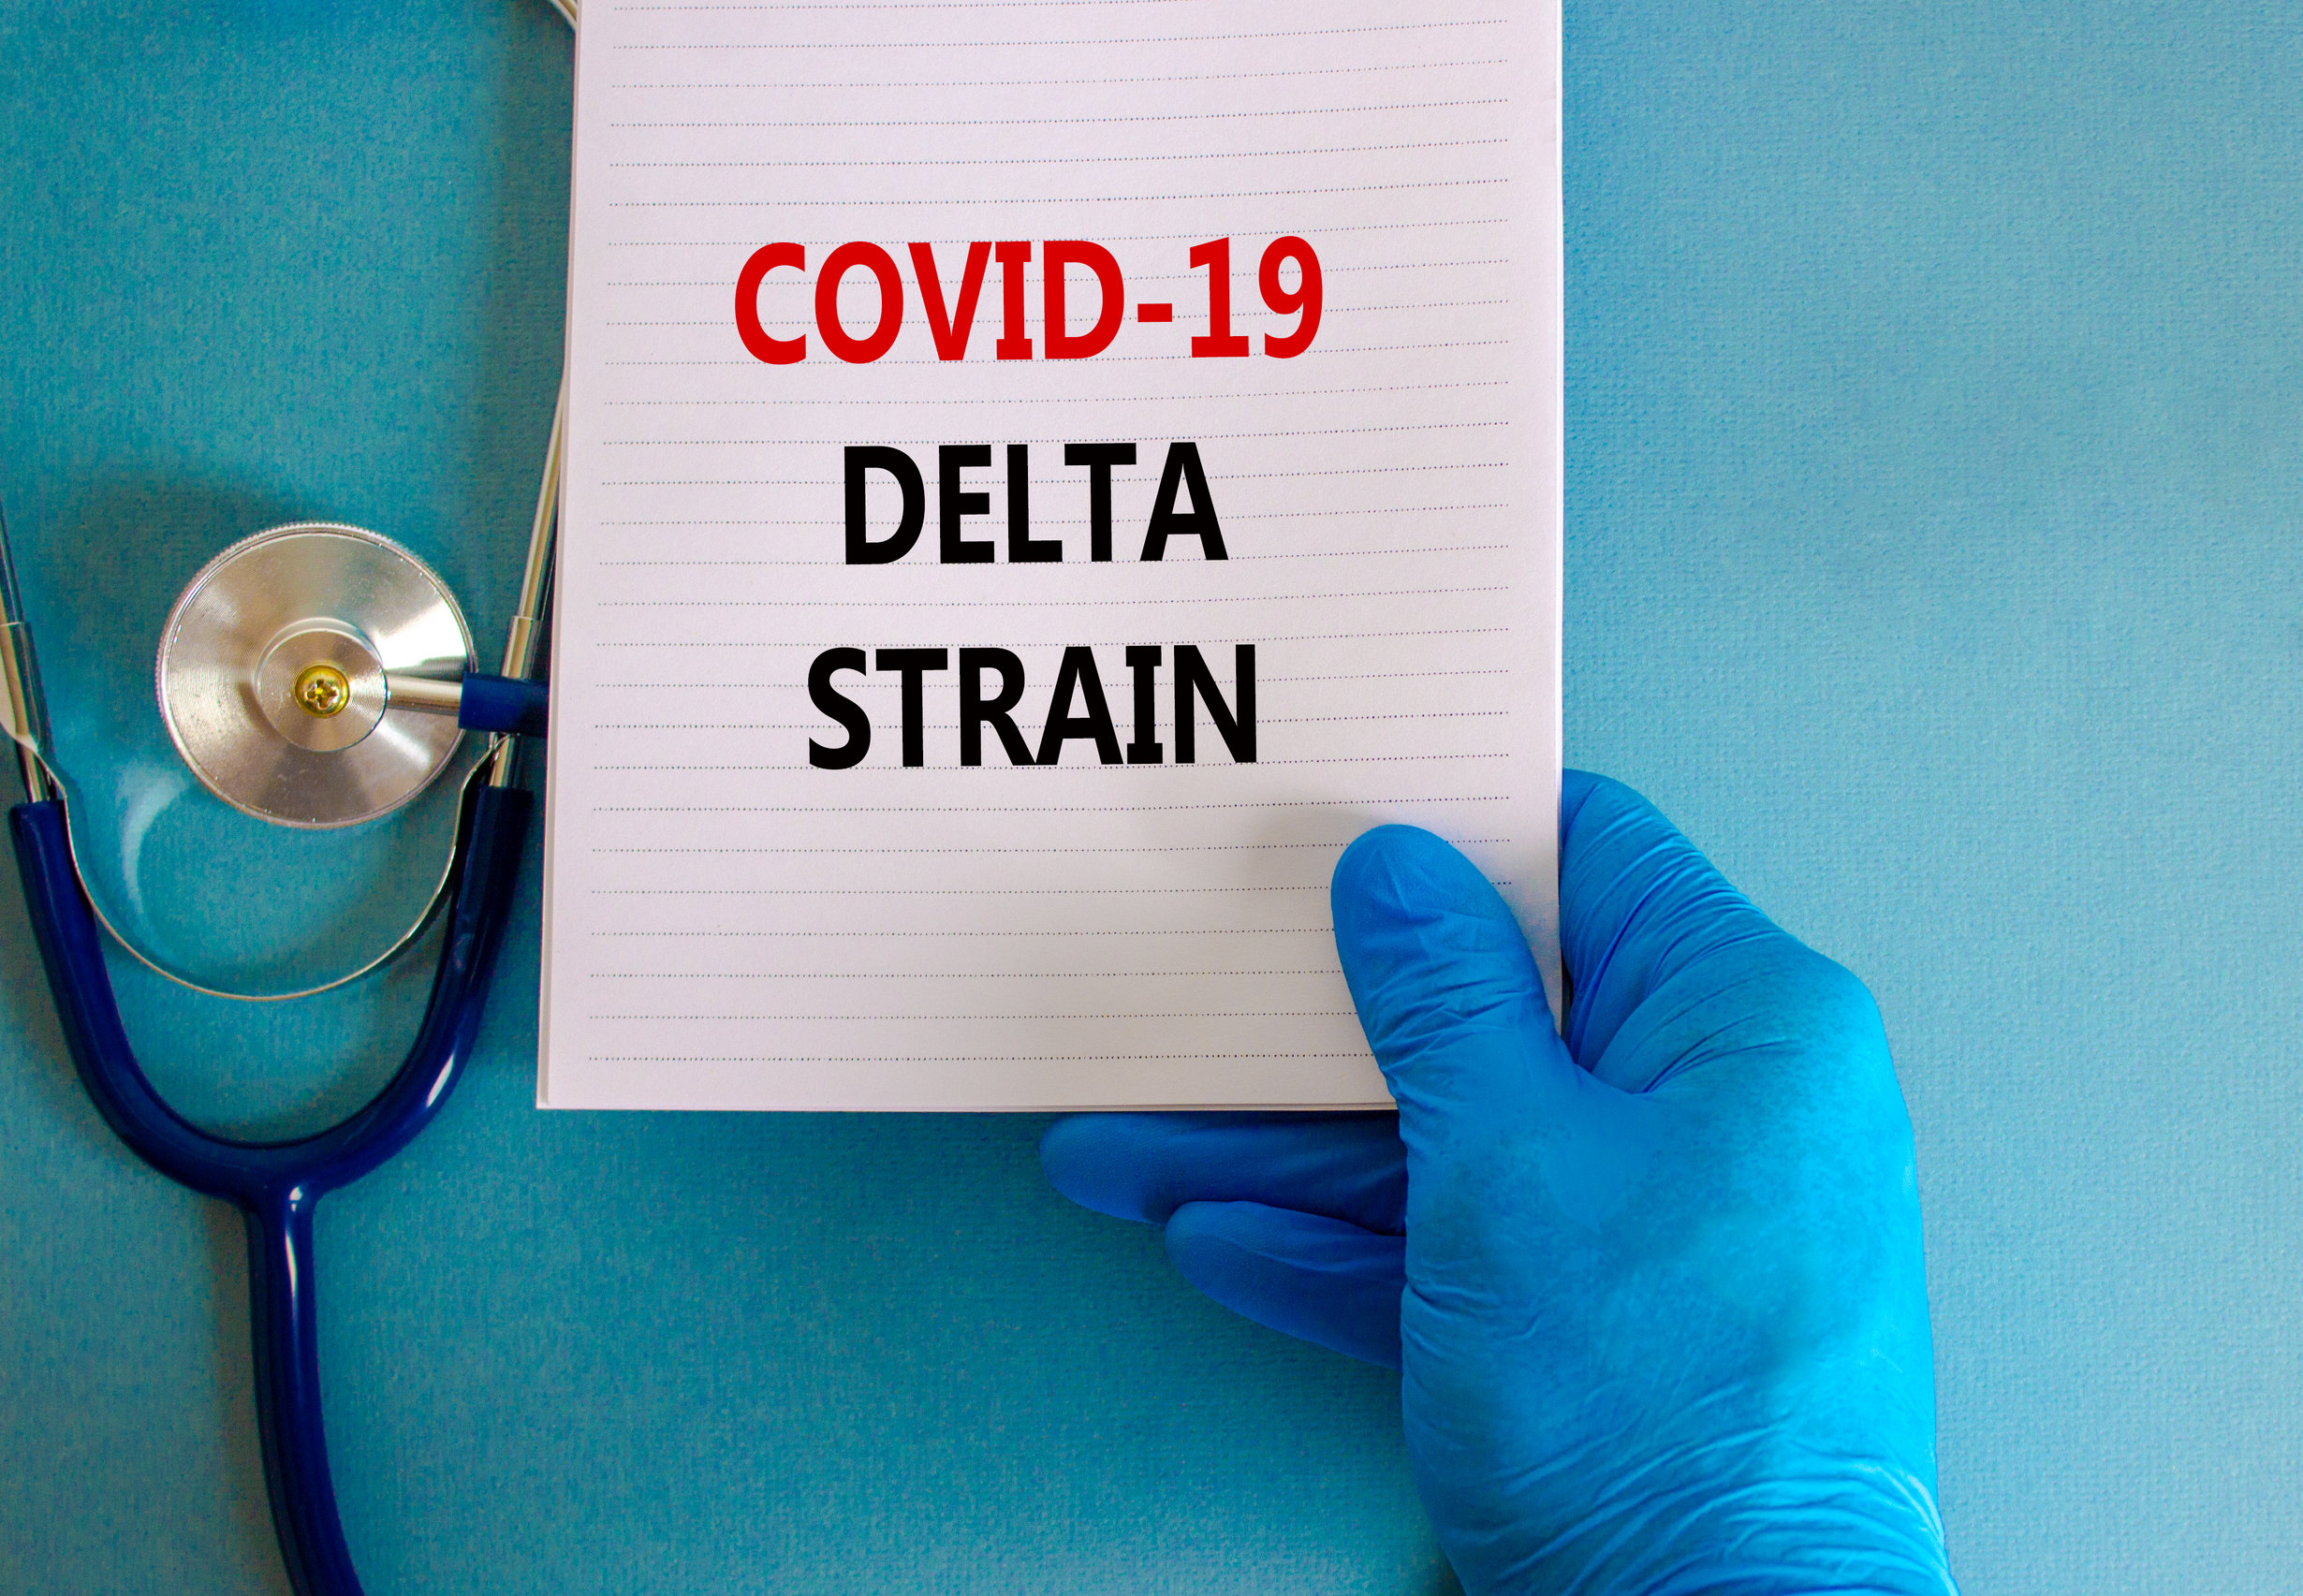 Covid-19 delta variant strain symbol. Doctor hand in blue glove with white card. Concept words 'Covid-19 delta strain'. Stethoscope. Medical and COVID-19 delta variant strain concept. Copy space.